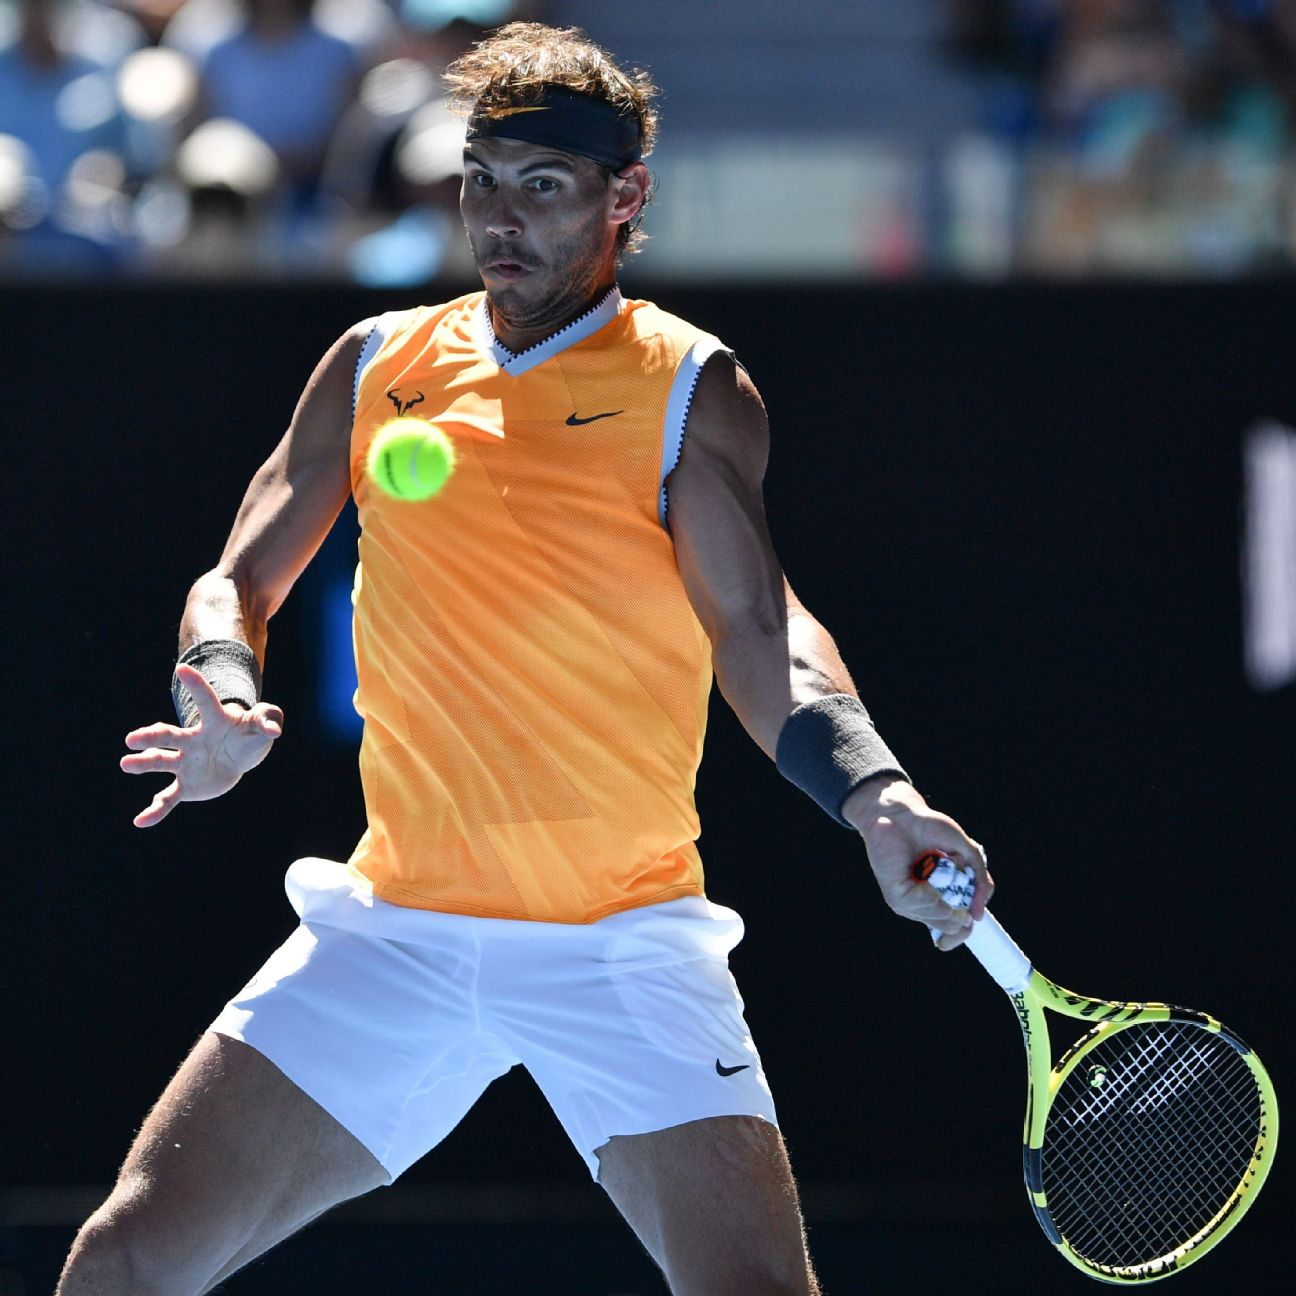 Rafael Nadal again got the best of Tomas Berdych and advanced to the quarterfinals of the Australian Open on Sunday. He'll face Frances Tiafoe, who celebrated his 21st birthday by beating Grigor Dimitrov.